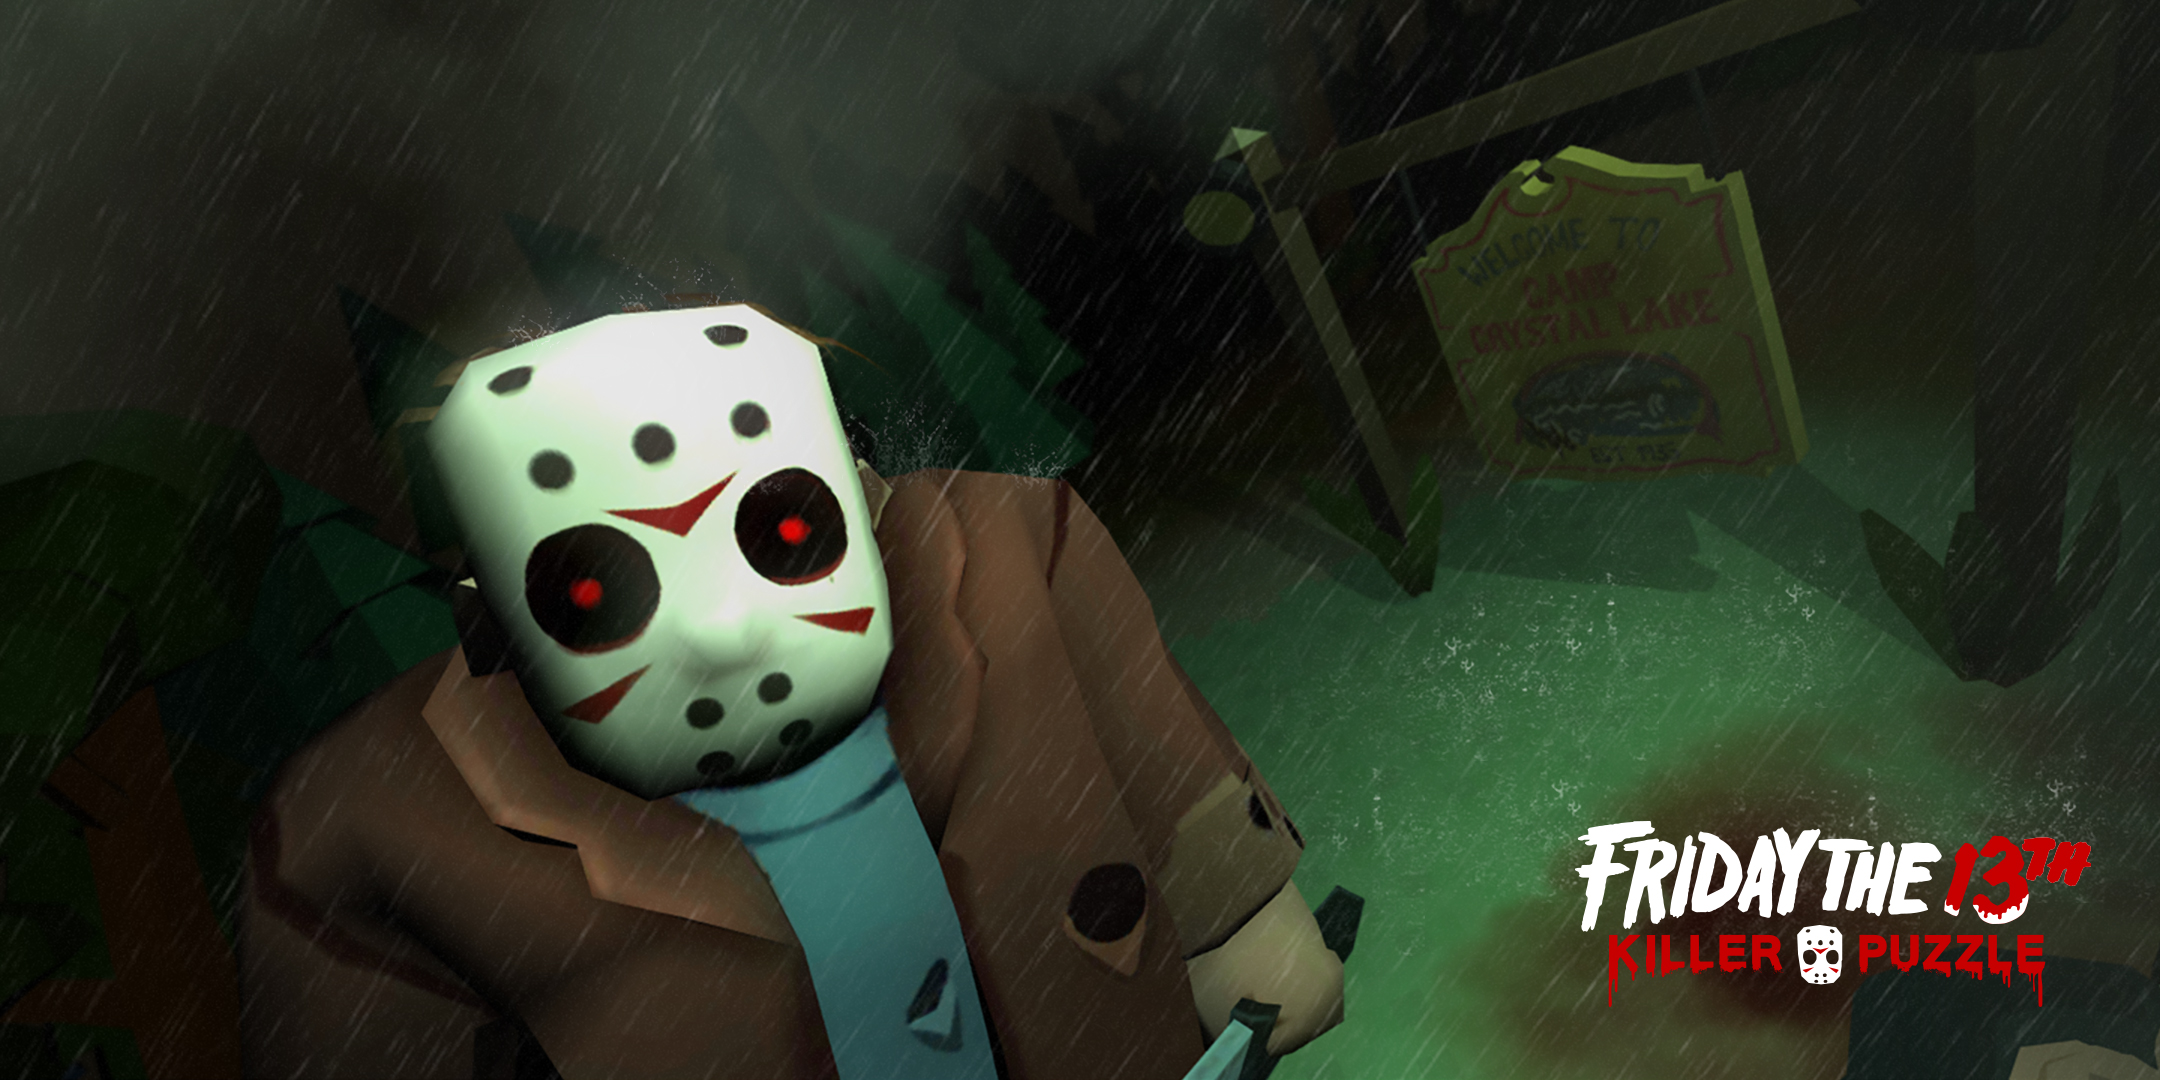 Friday the 13th: Killer Puzzle Launches on iOS, Android, and